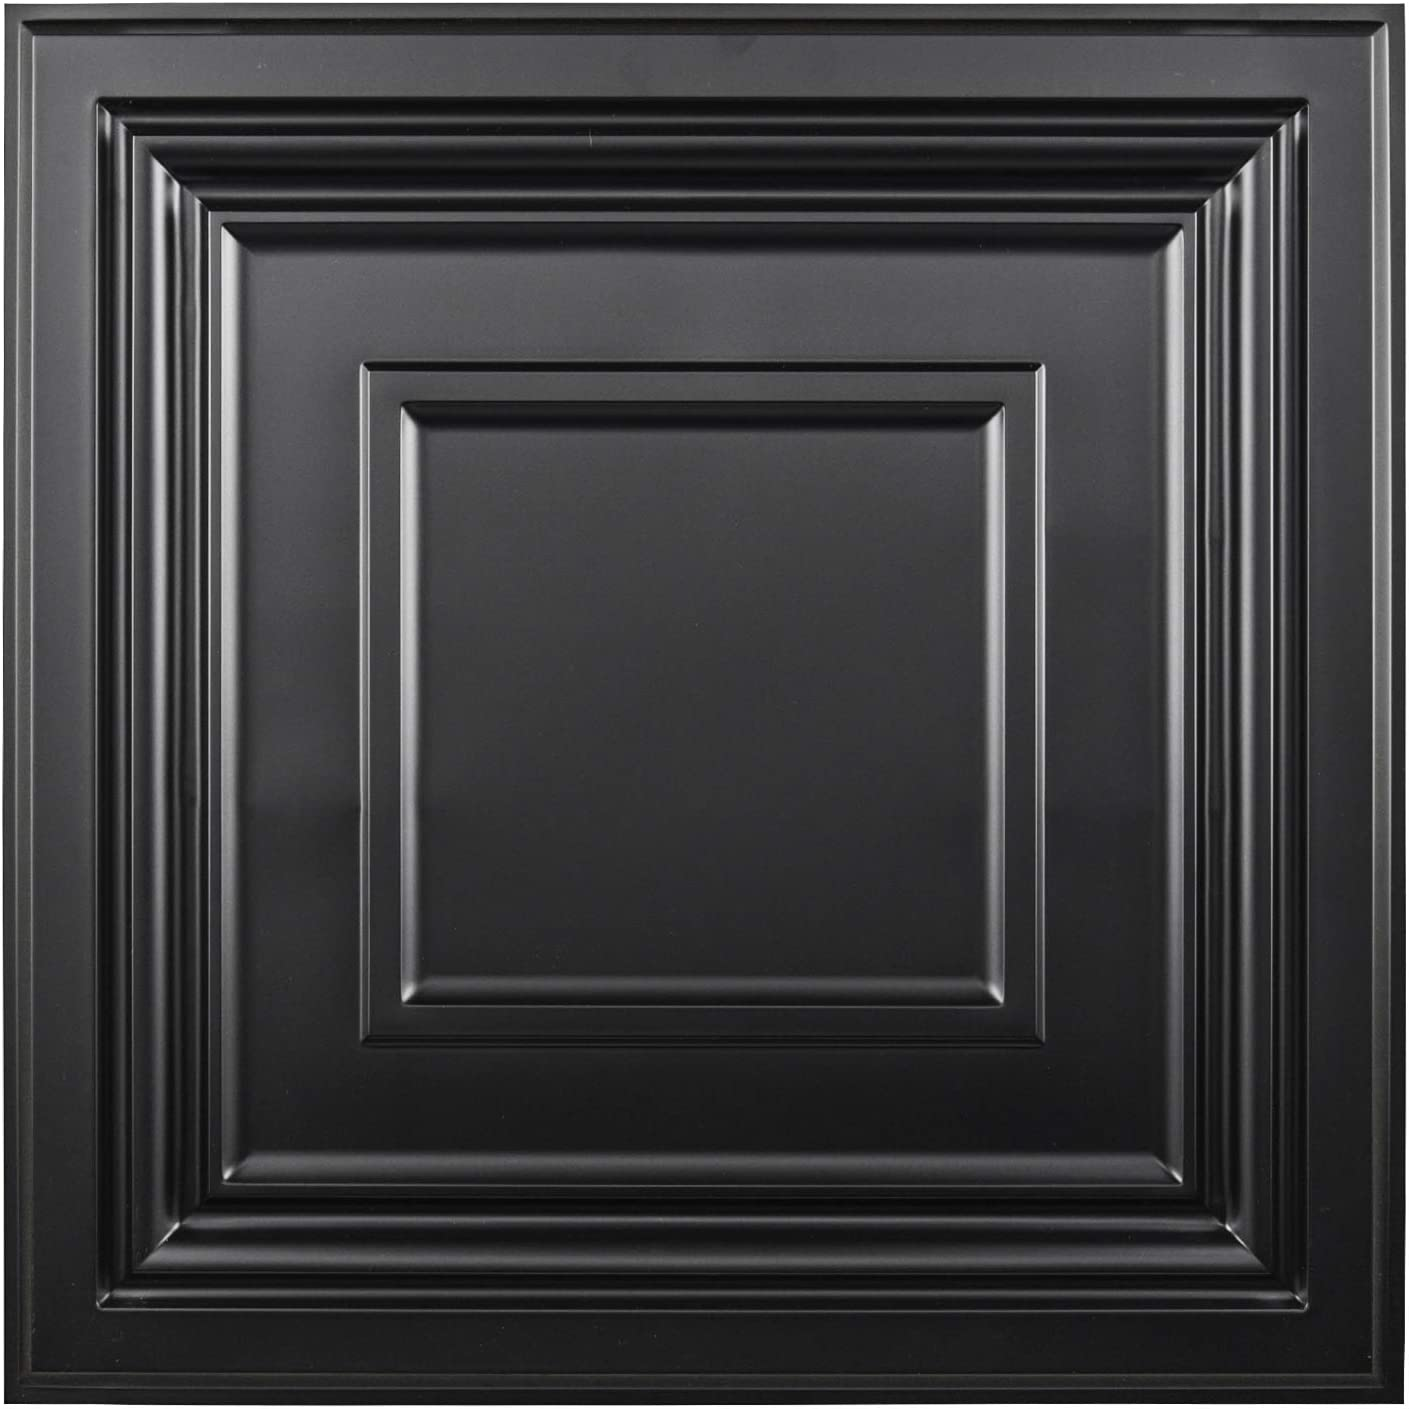 Amazon Com Art3d Decorative Drop Ceiling Tile 2x2 Pack Of 12pcs Glue Up Ceiling Panel Square Relief In Black Home Kitchen